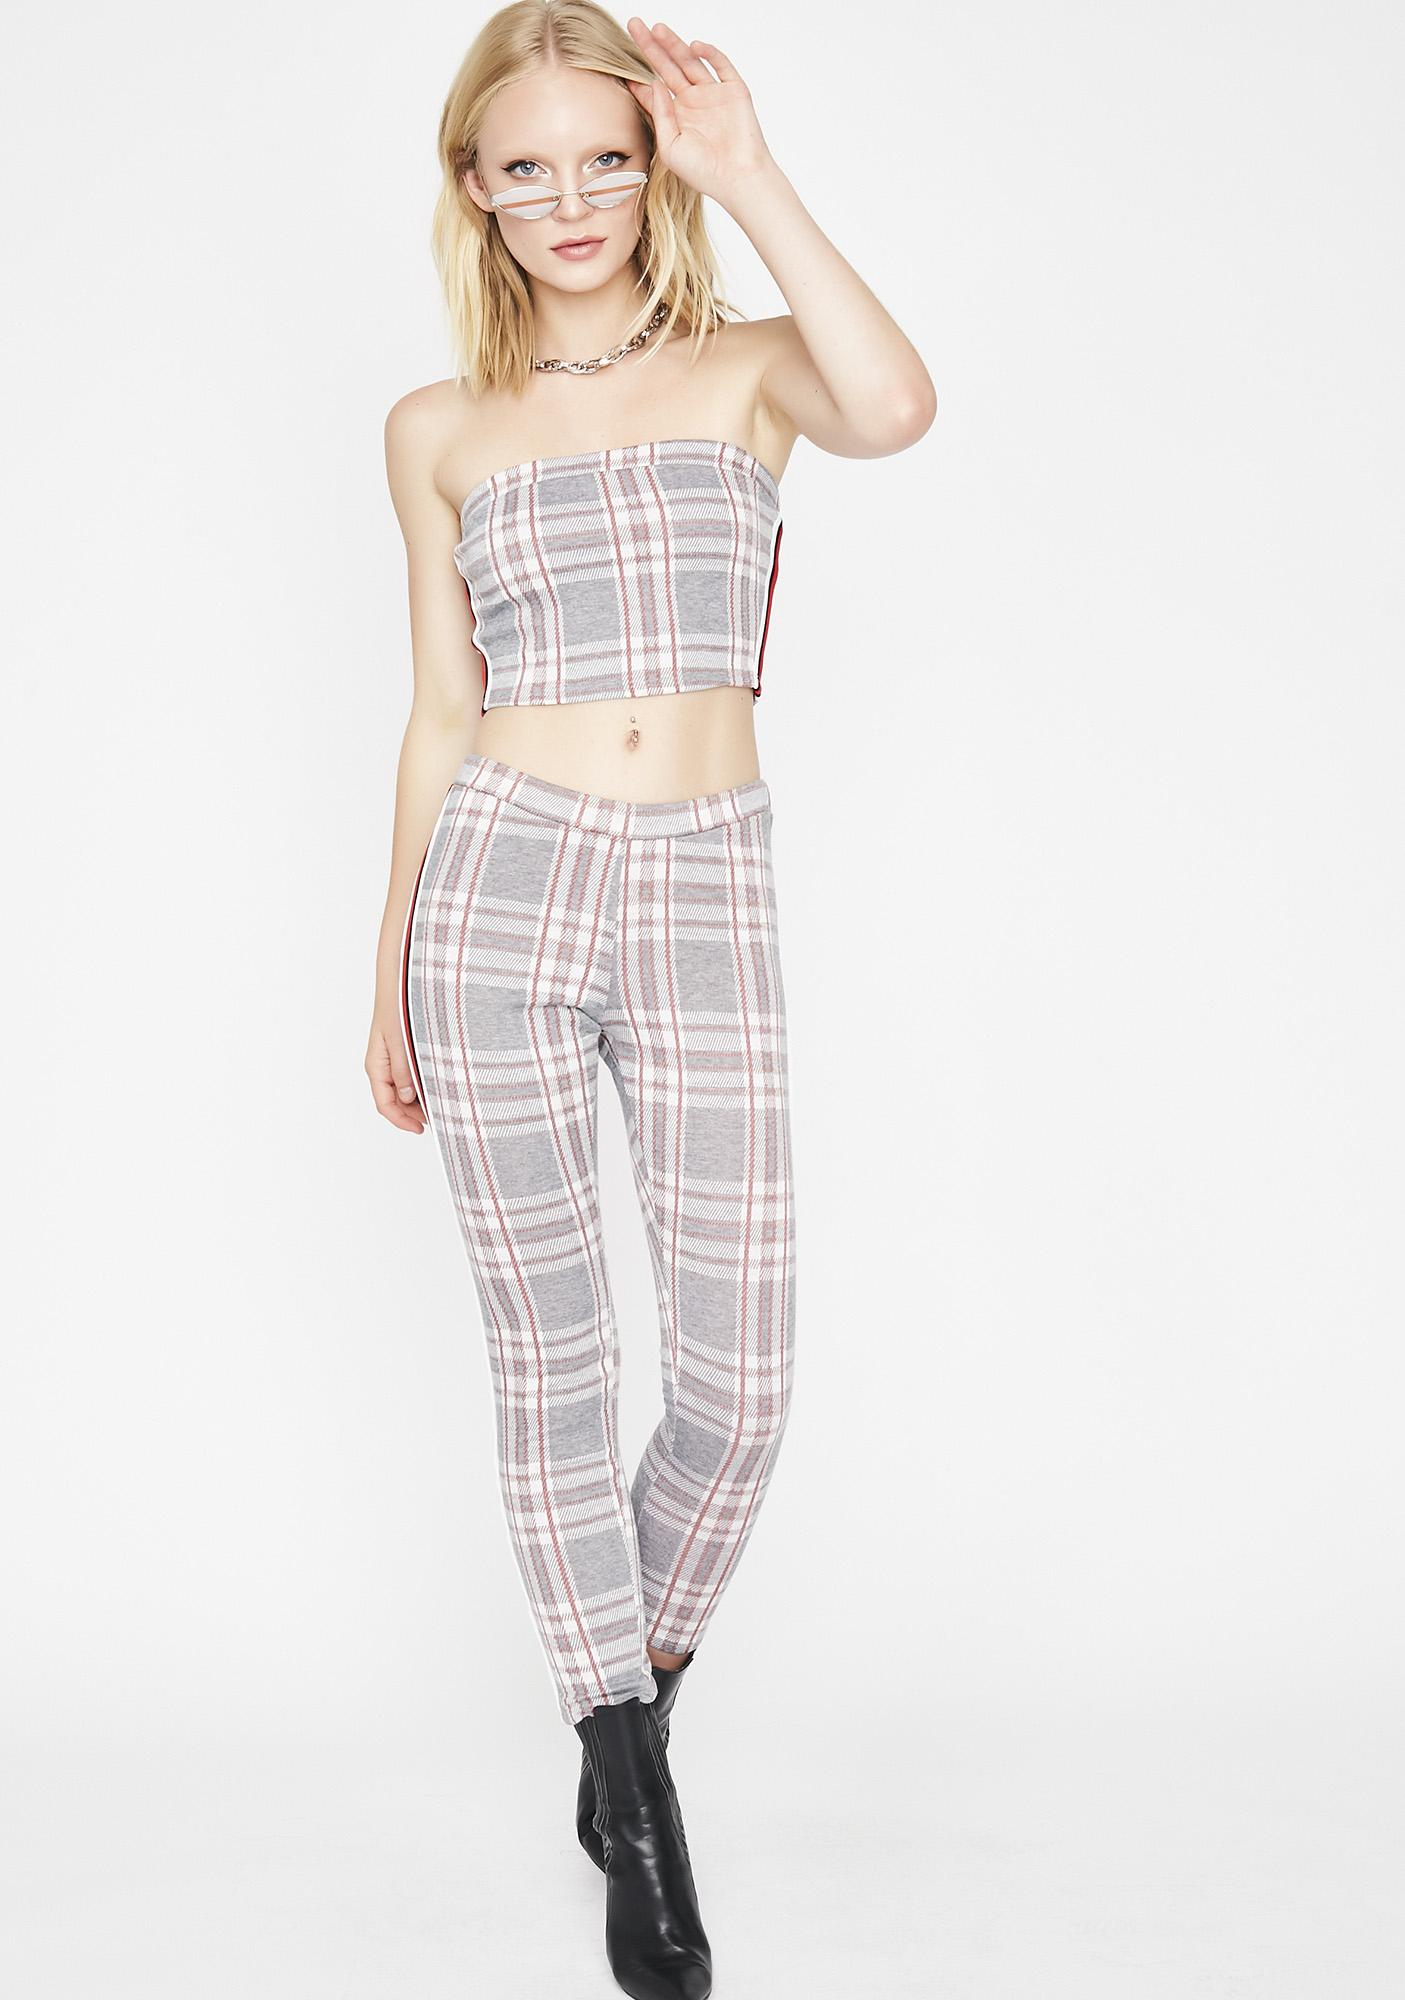 Stoned Breakin Habits Plaid Set by Love Vintage